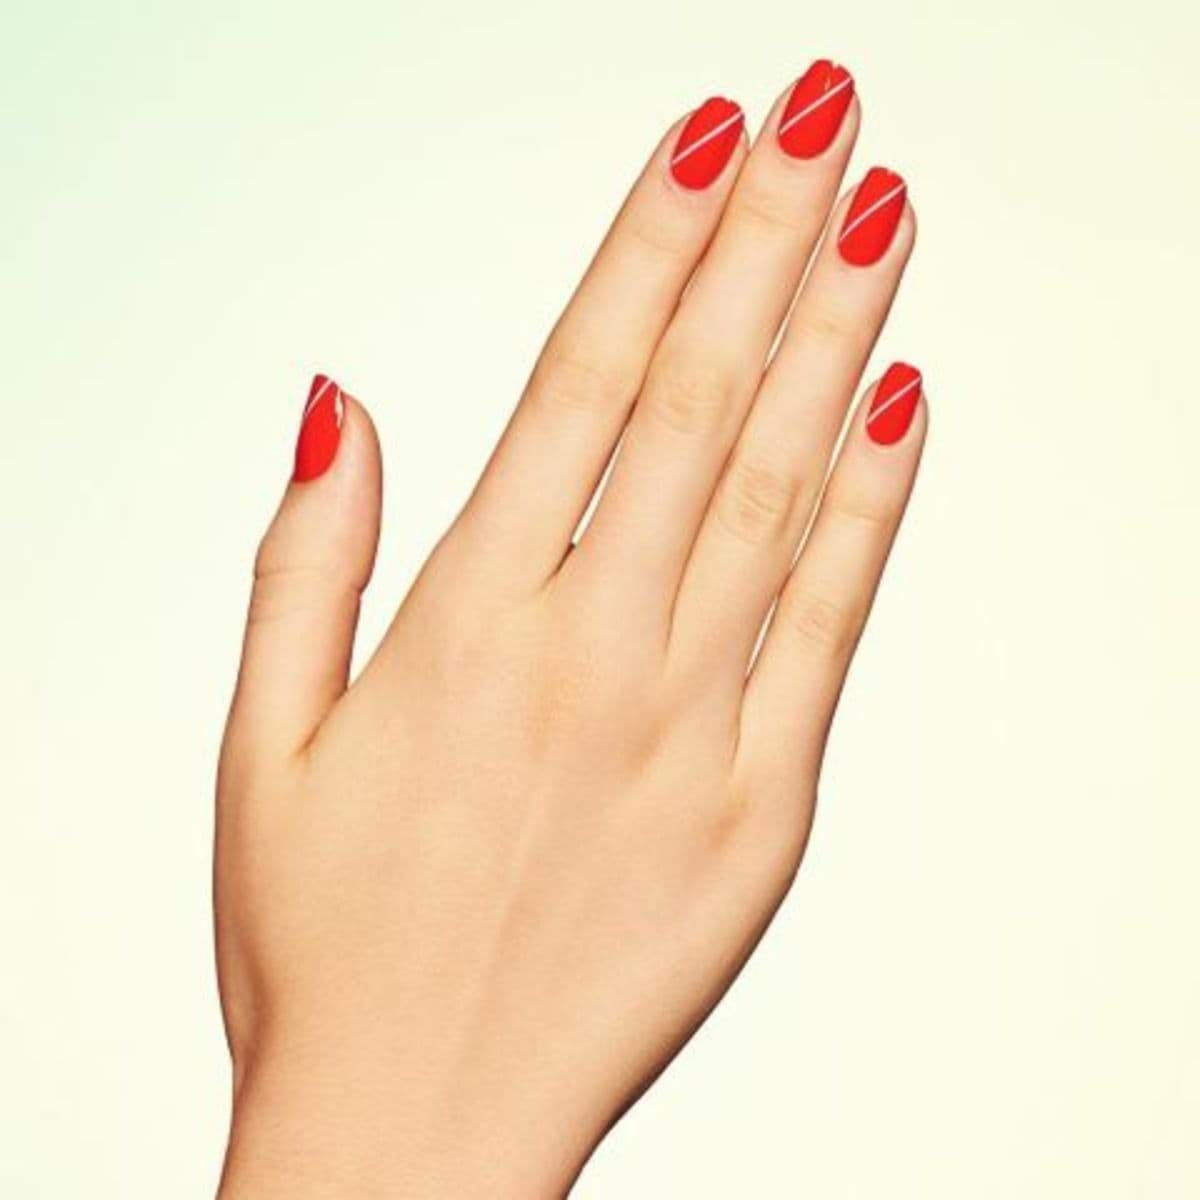 elle-red-nail-designs-paintbox